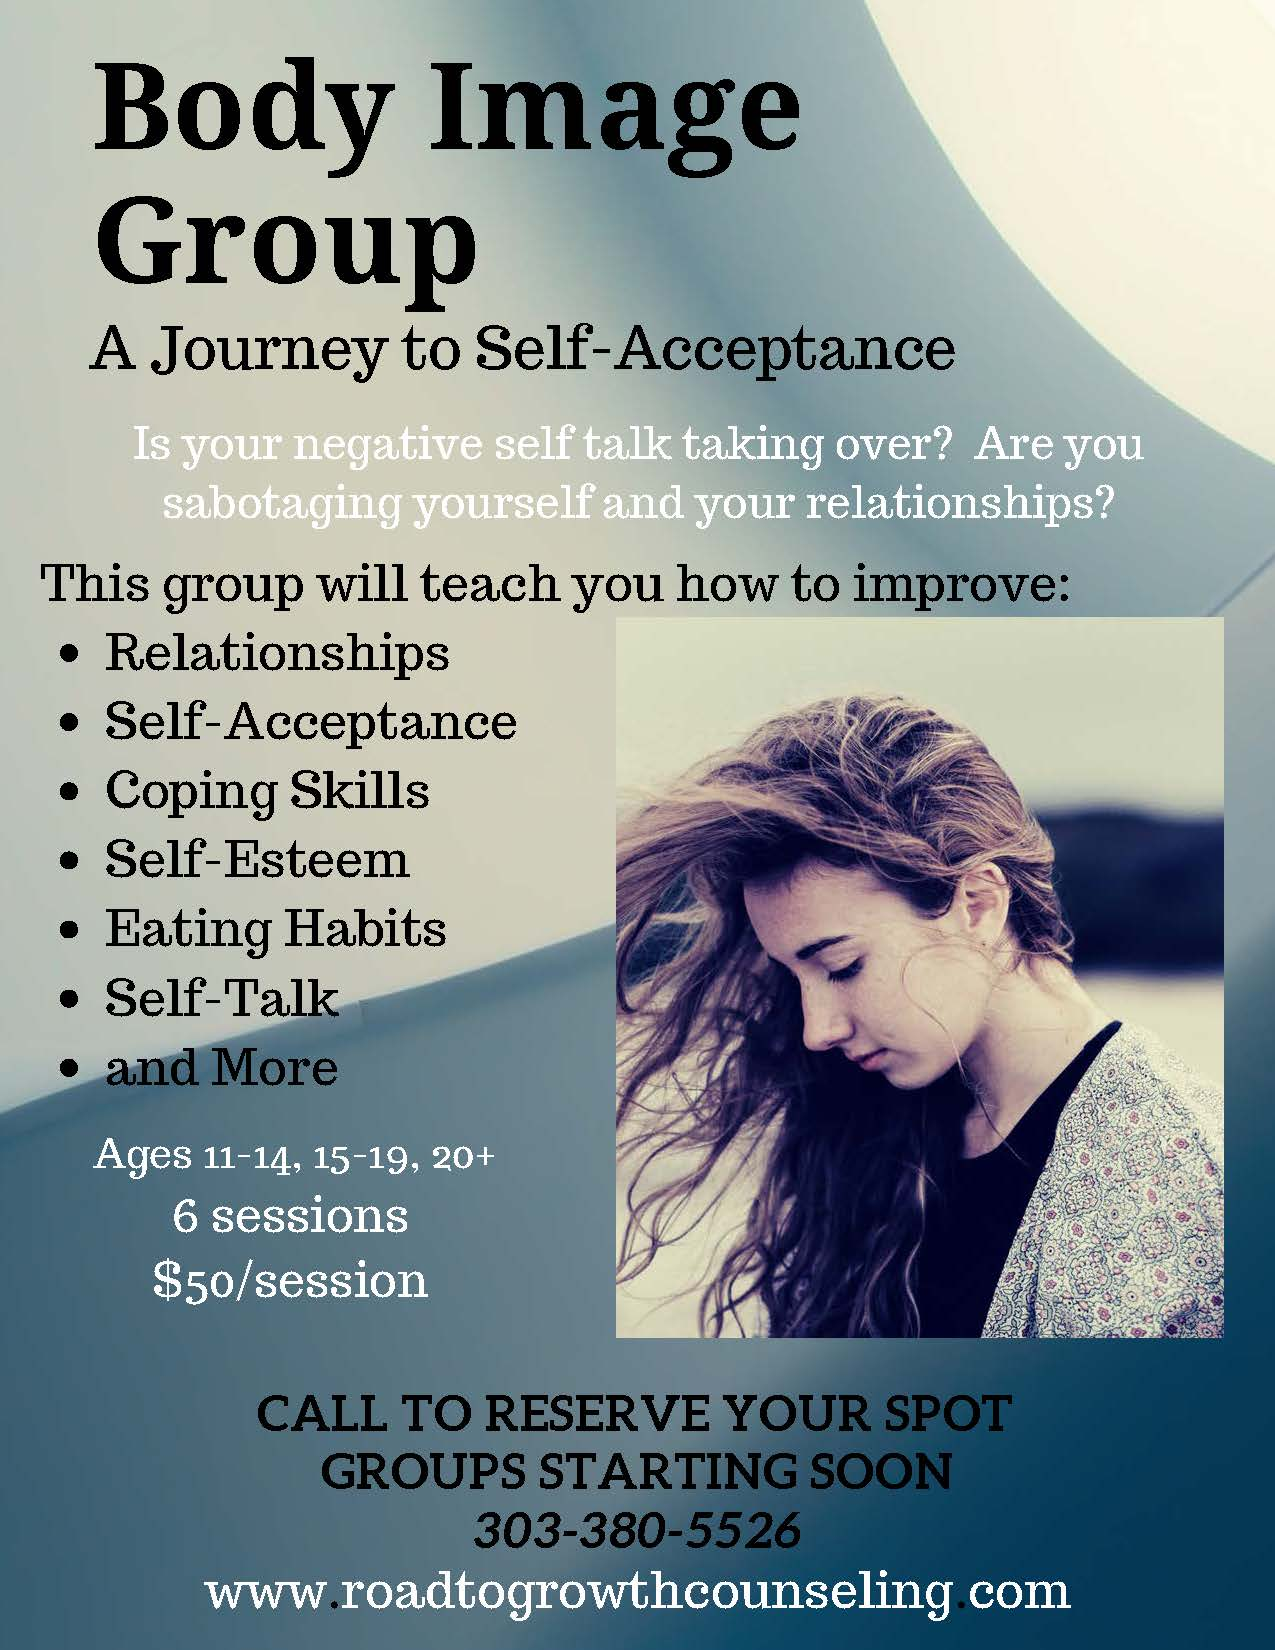 Body Image Group